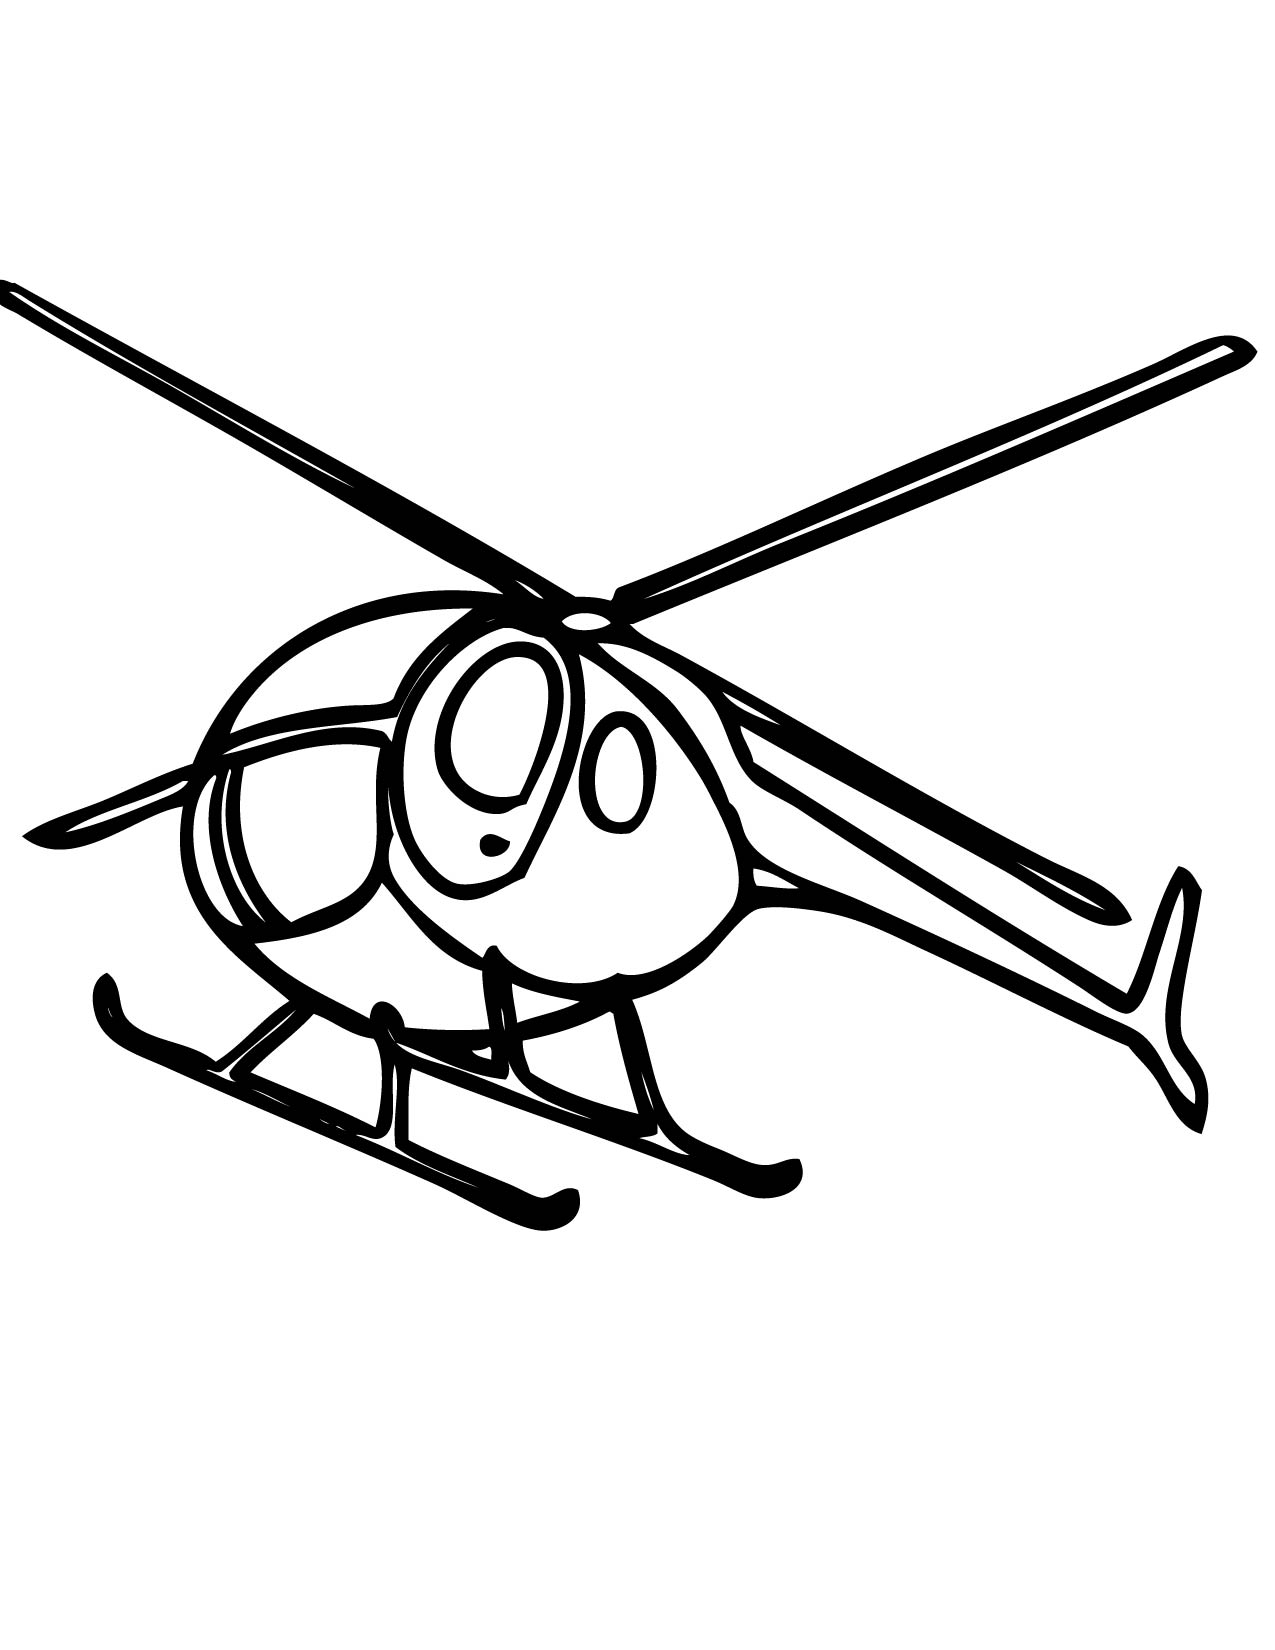 Helicopter Coloring Page Handipoints